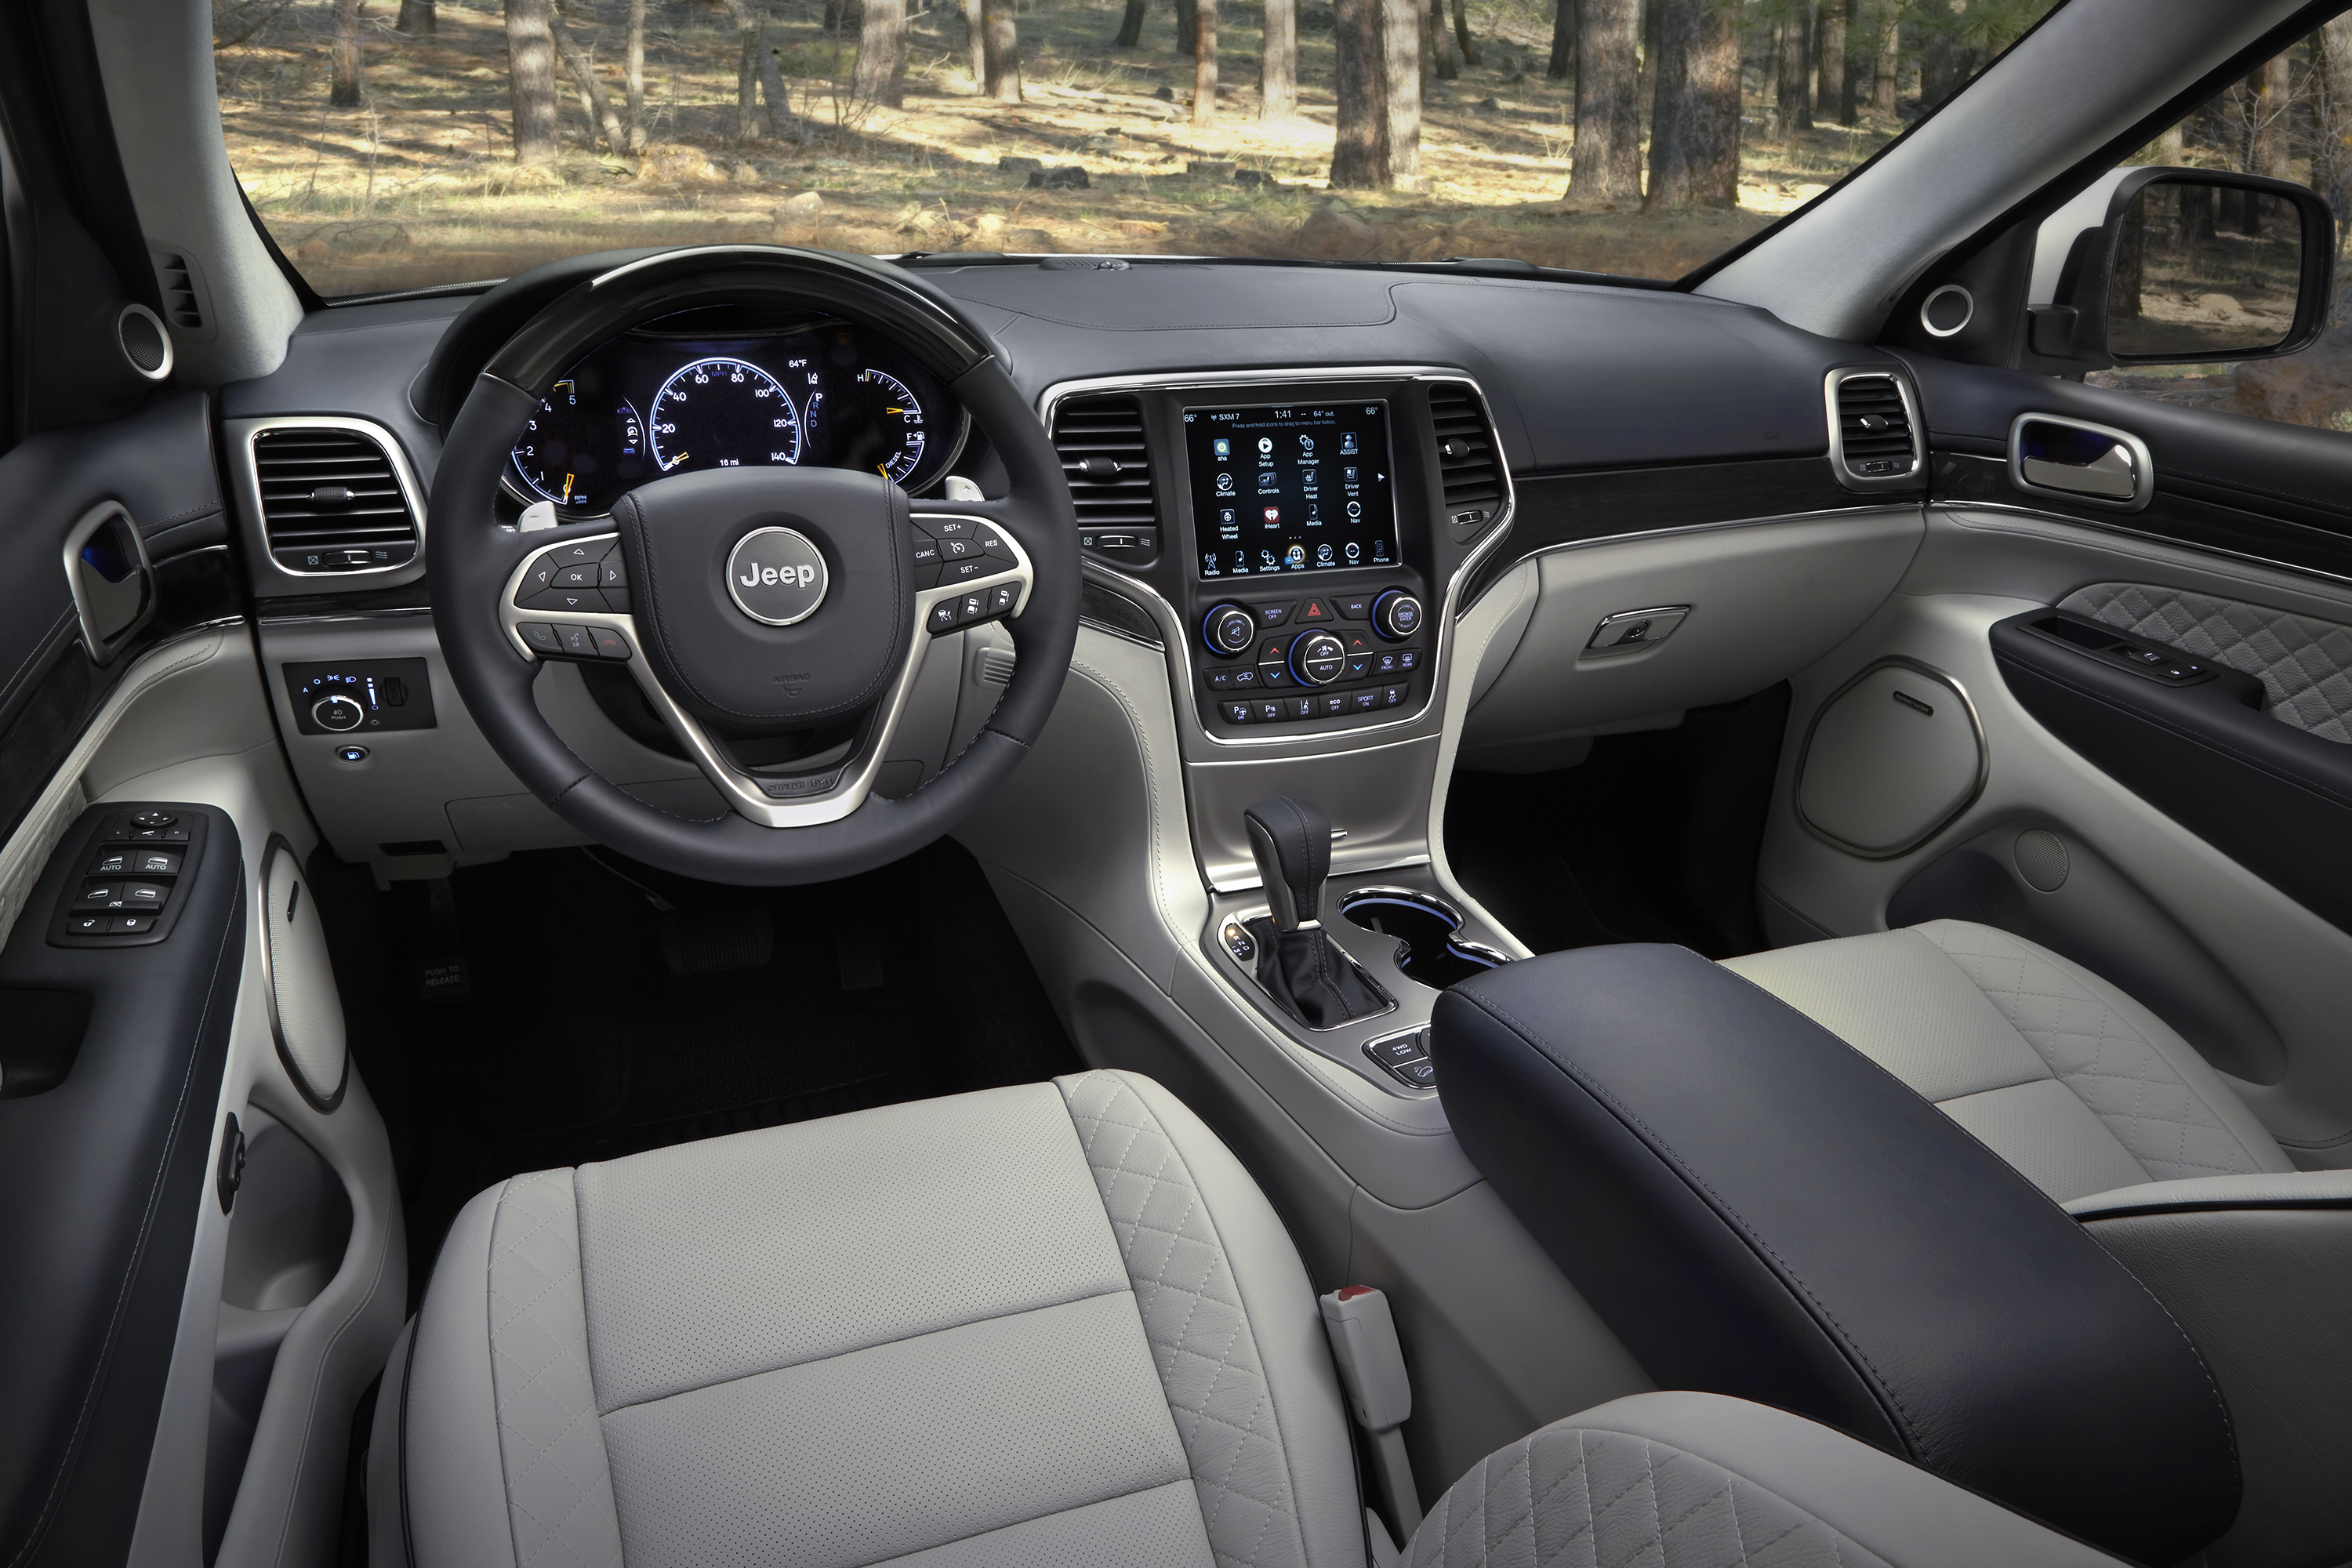 jeep command this three limited row be attention concept cherokee yuntu yearns for could commander your world the